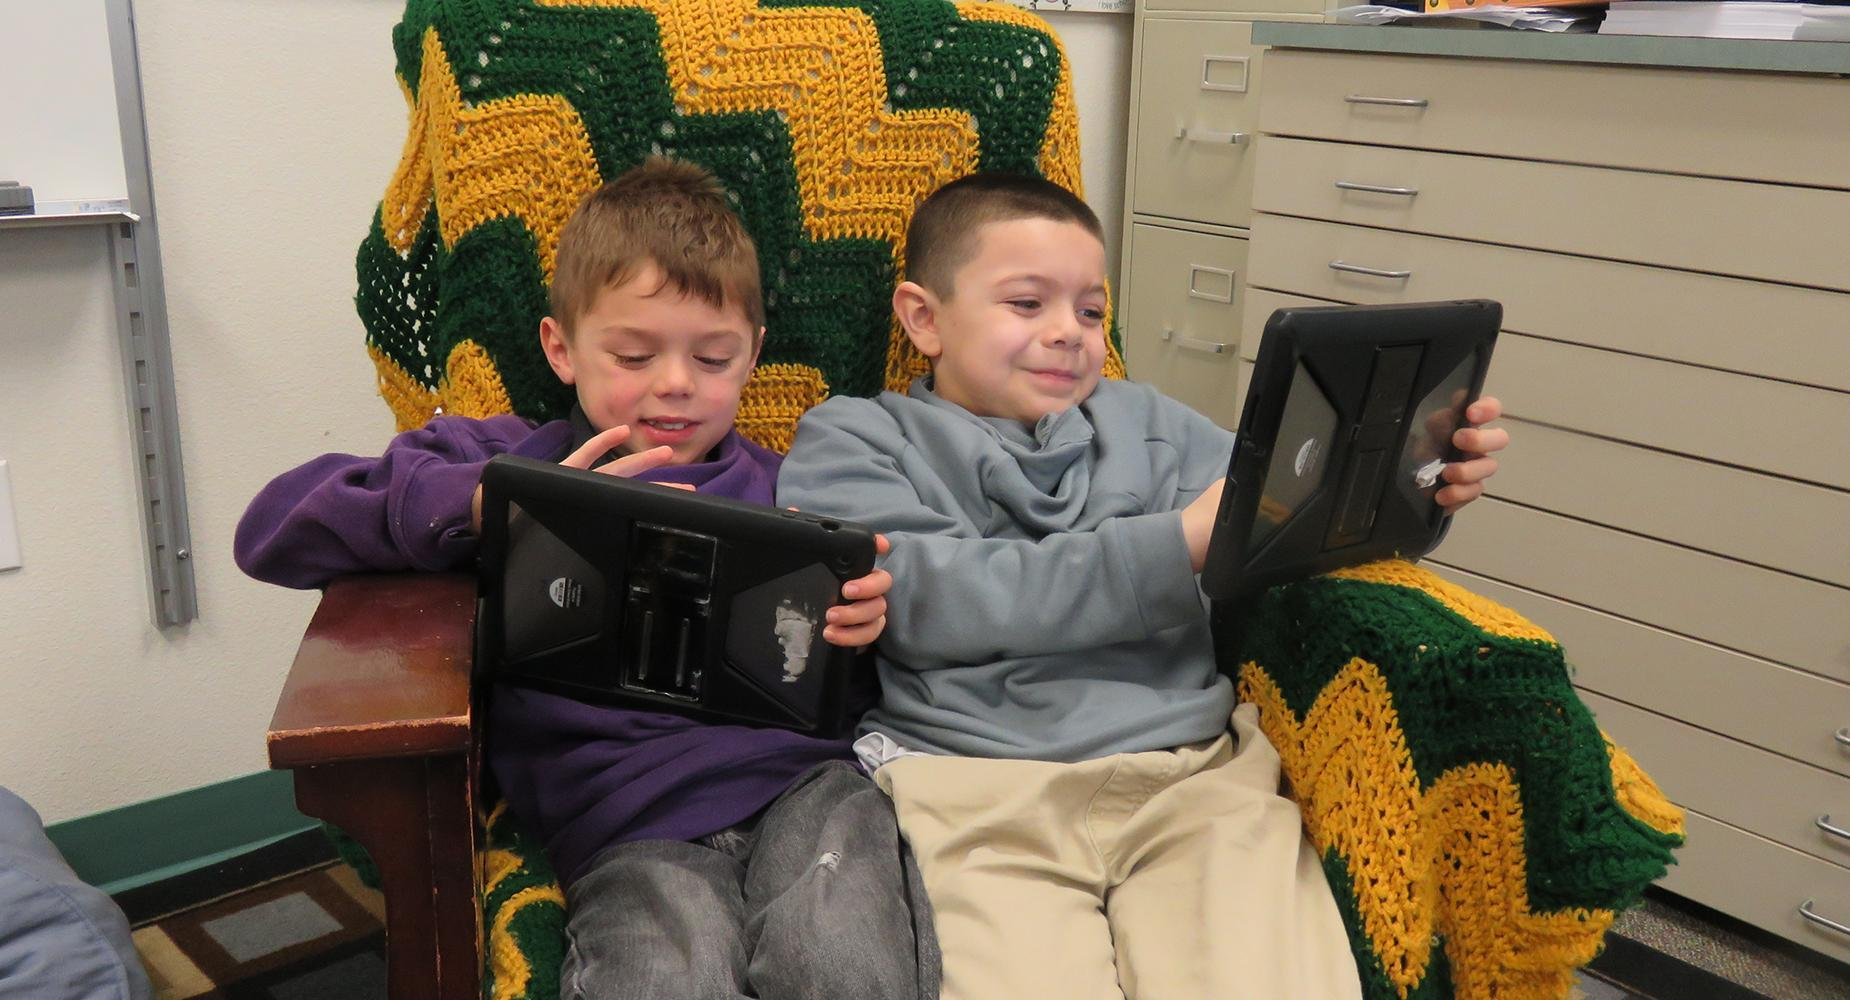 Two boys complete their work using an iPad while sitting in a soft easy chair.